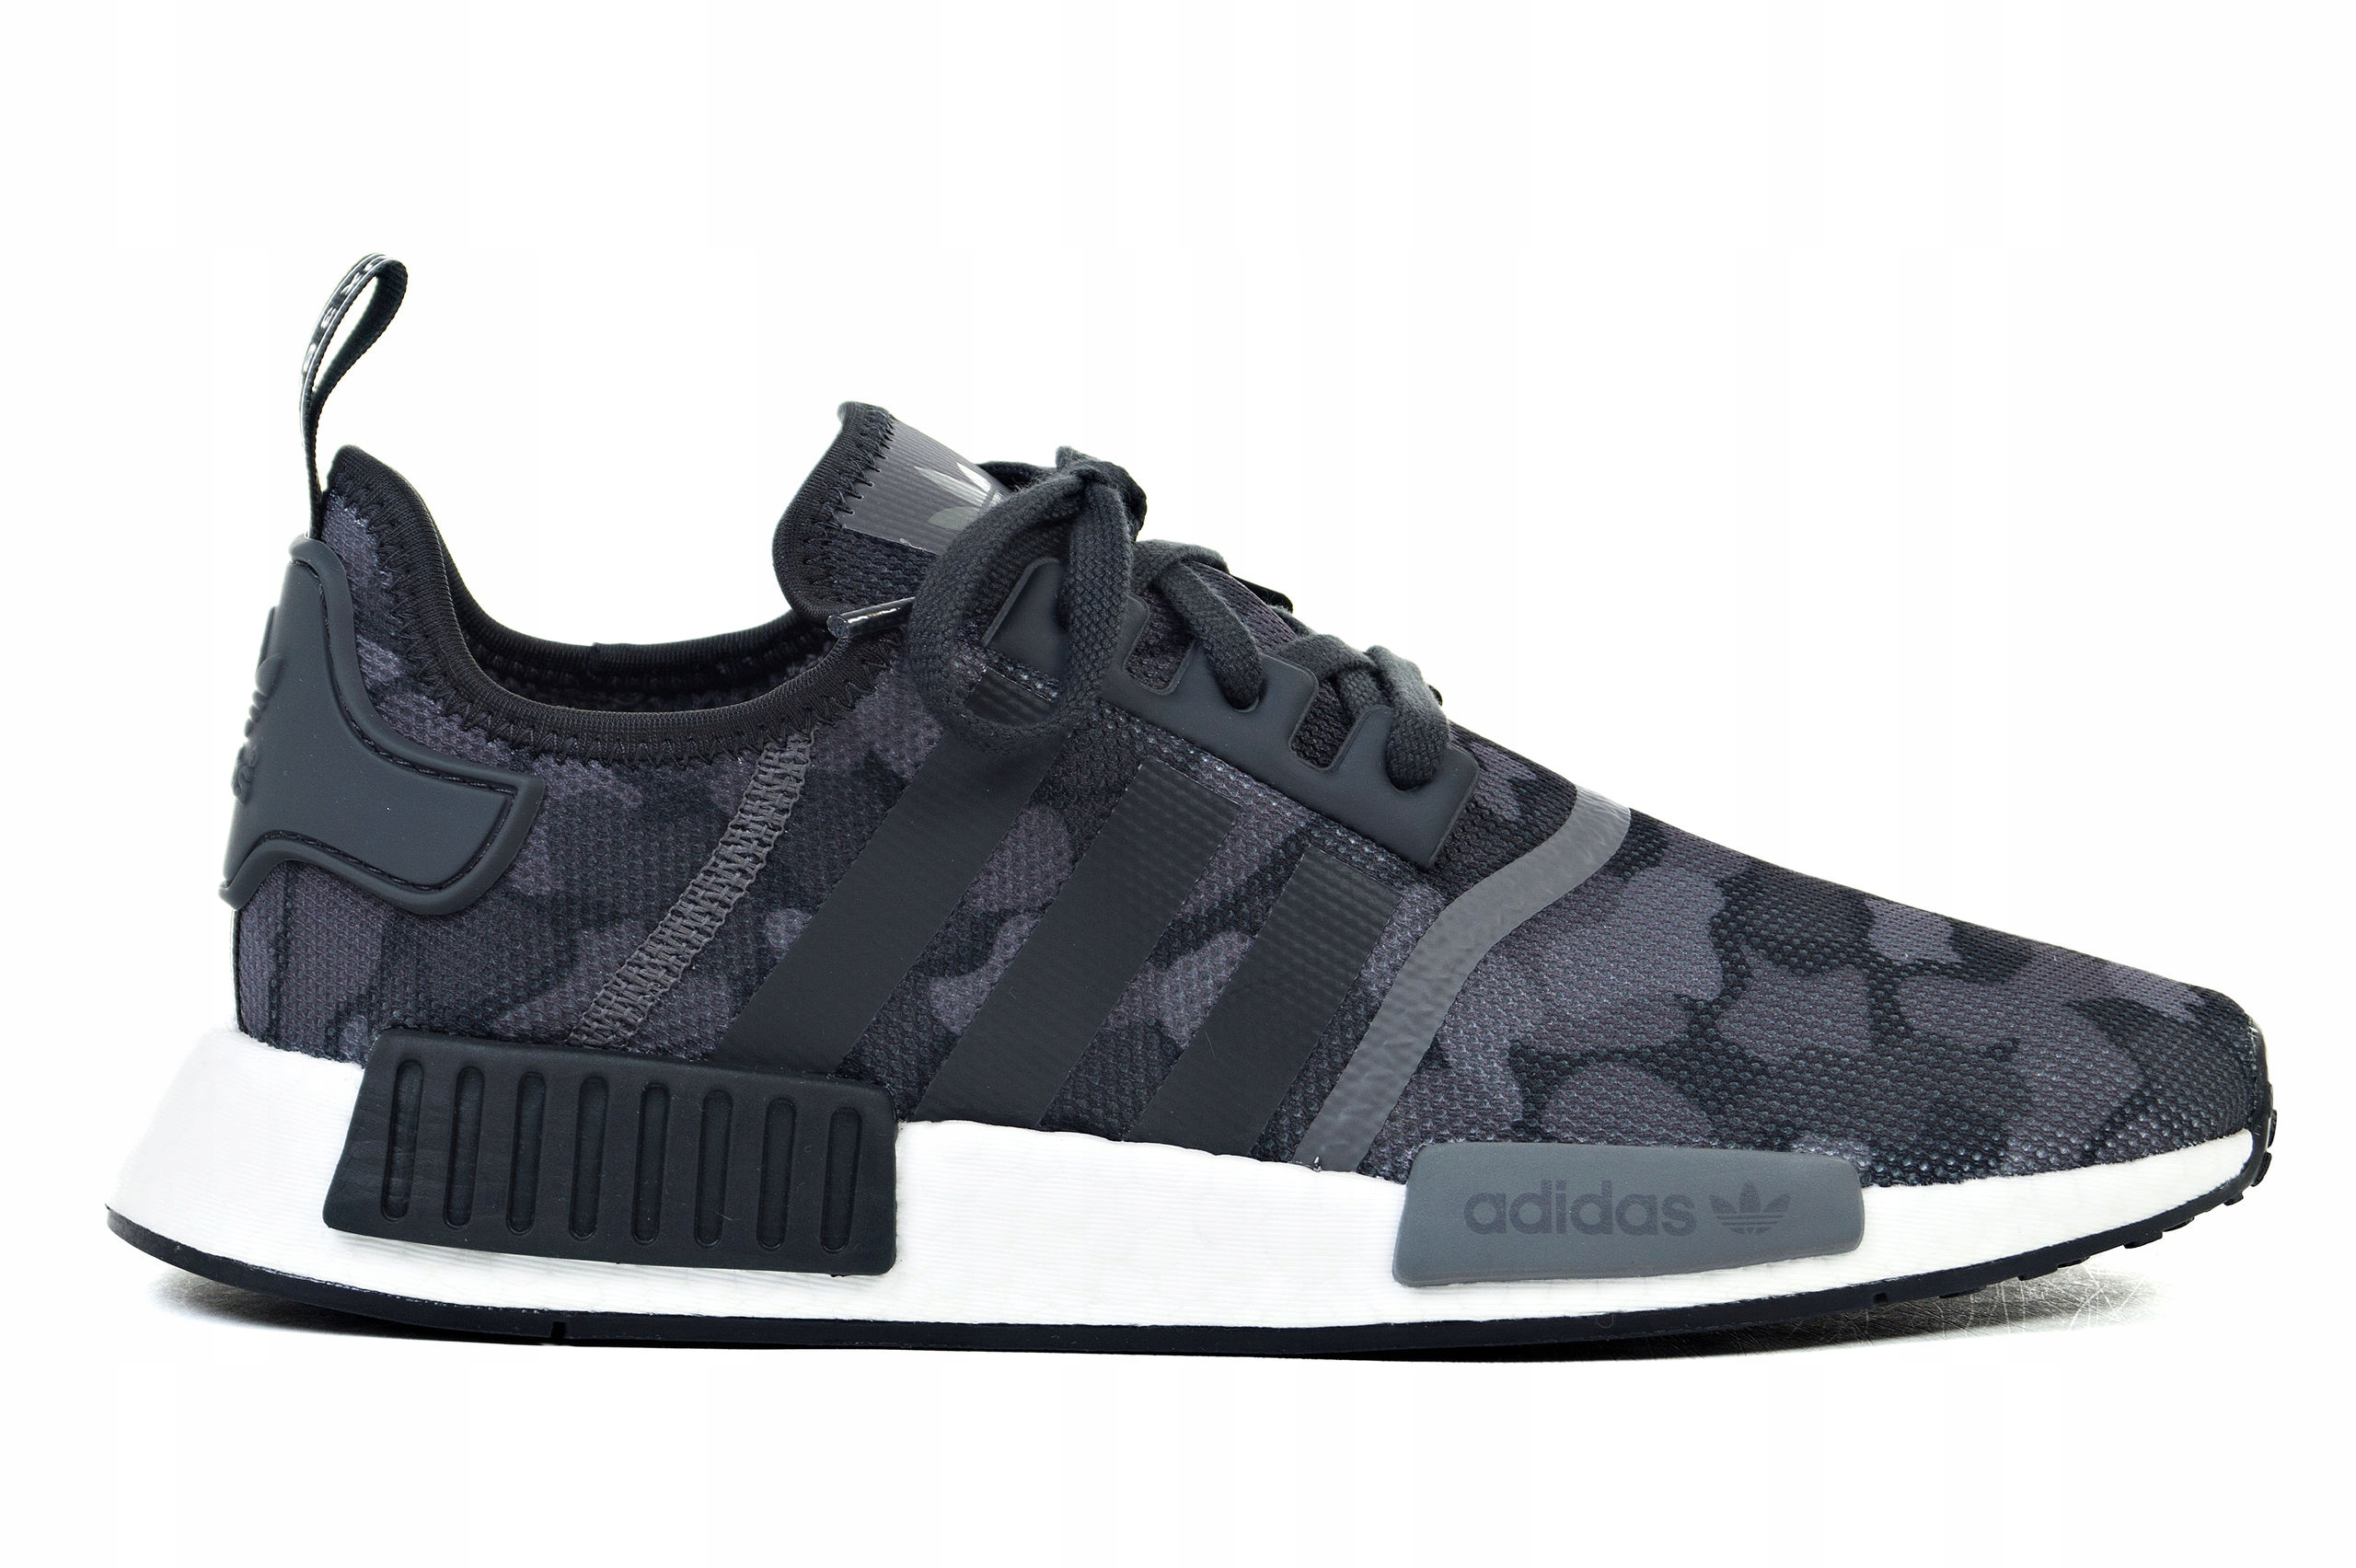 BUTY ADIDAS NMD_R1 NMD D96616 SZARE MORO R. 41 13